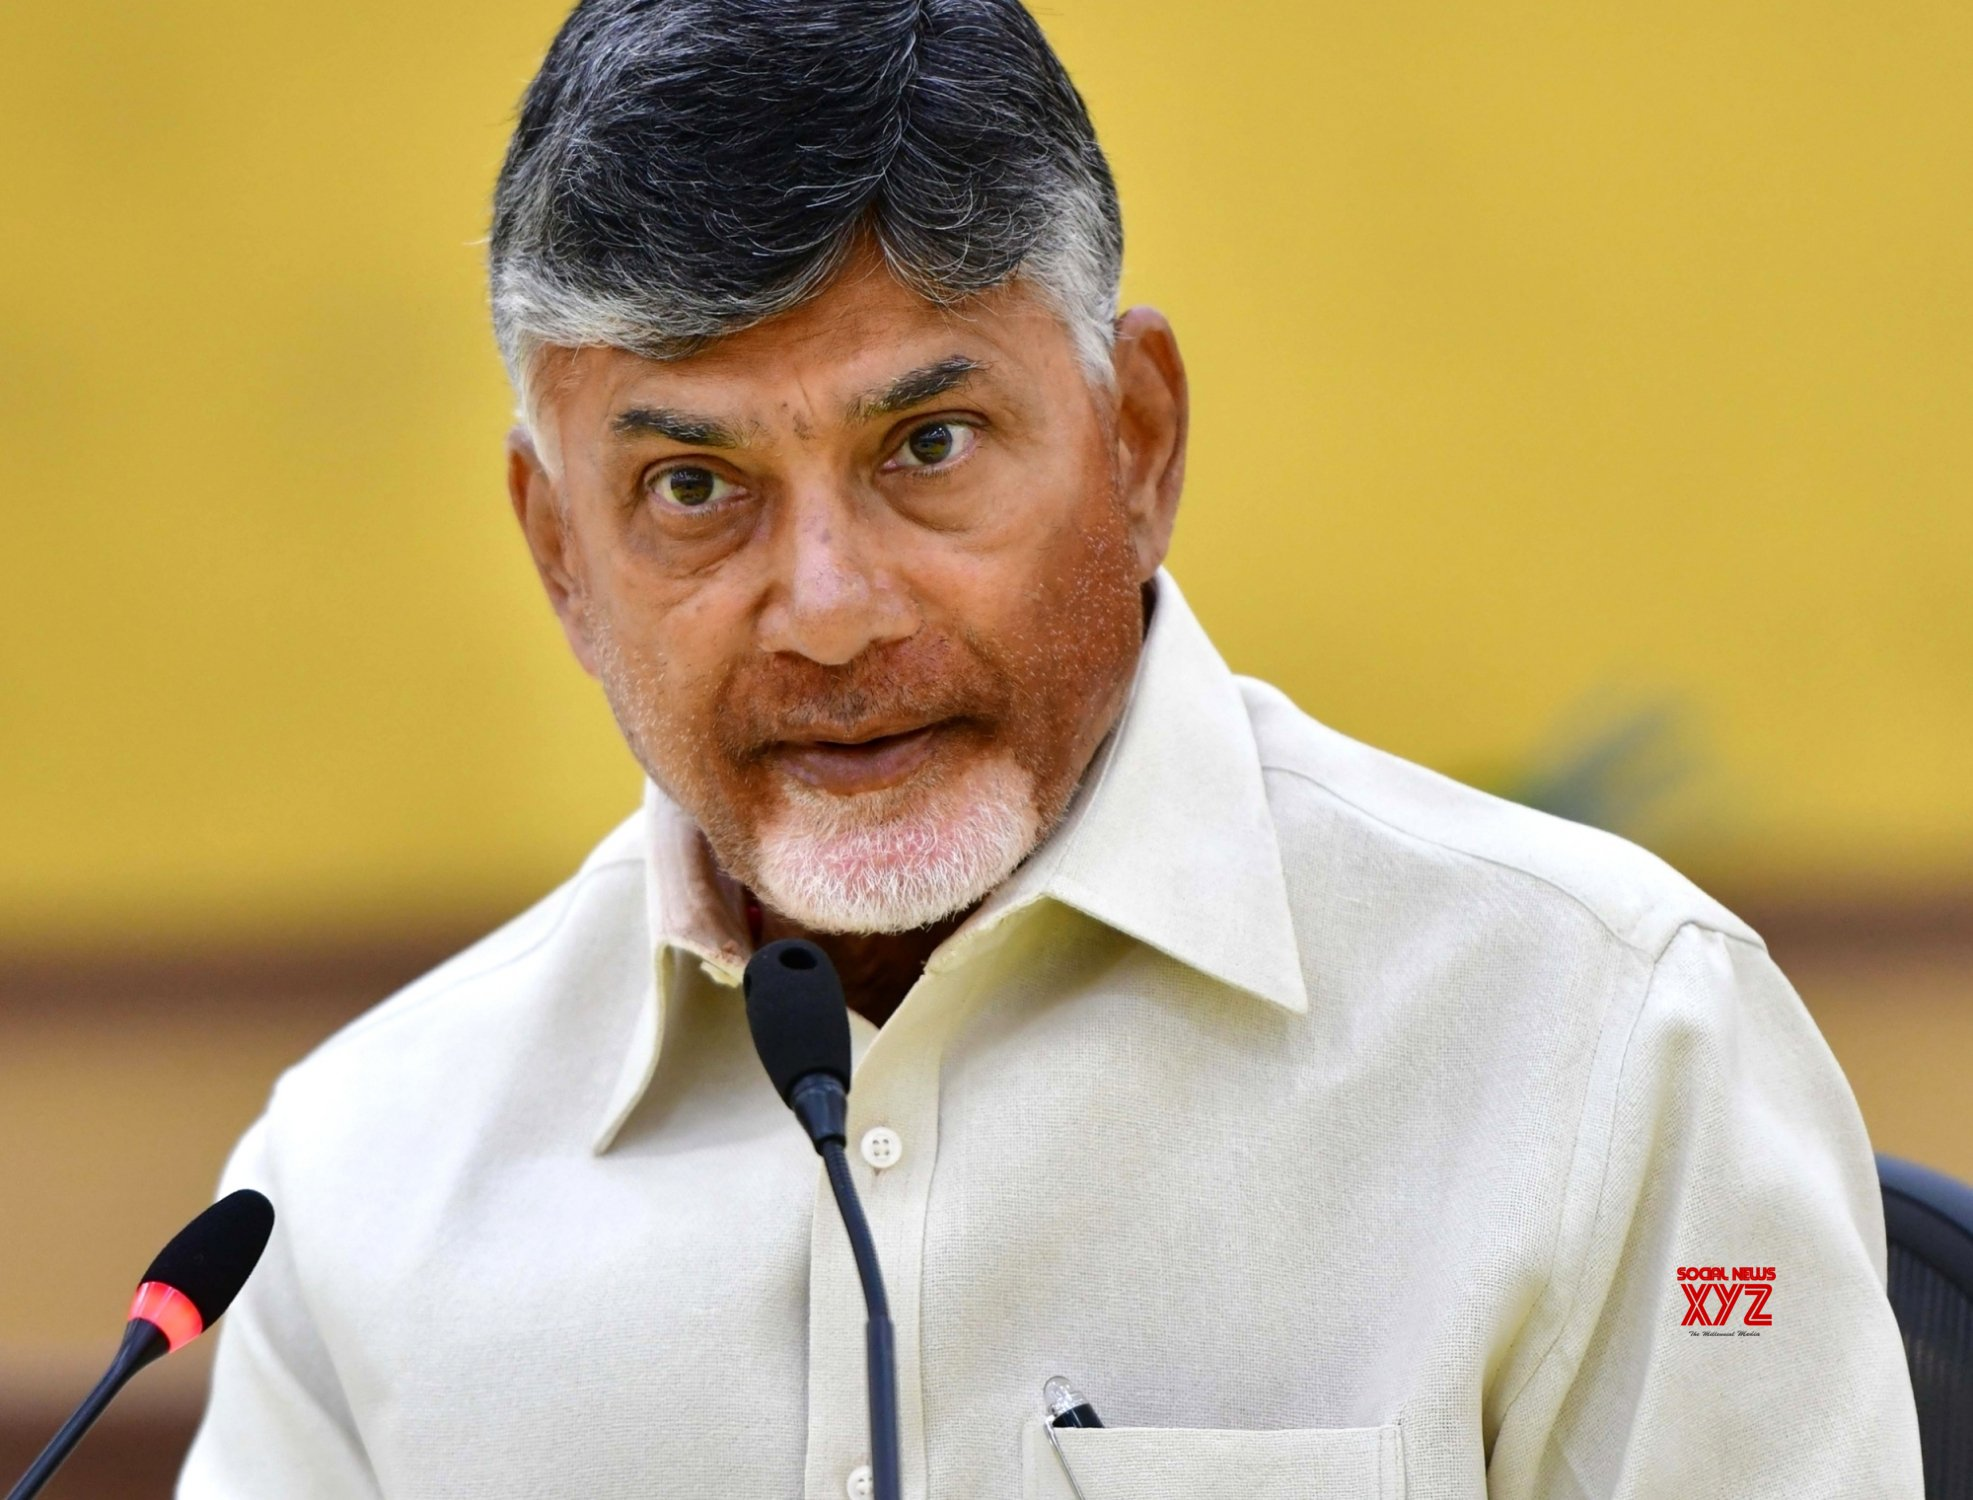 What a fate! CBN has to call his junior as 'Sir'!